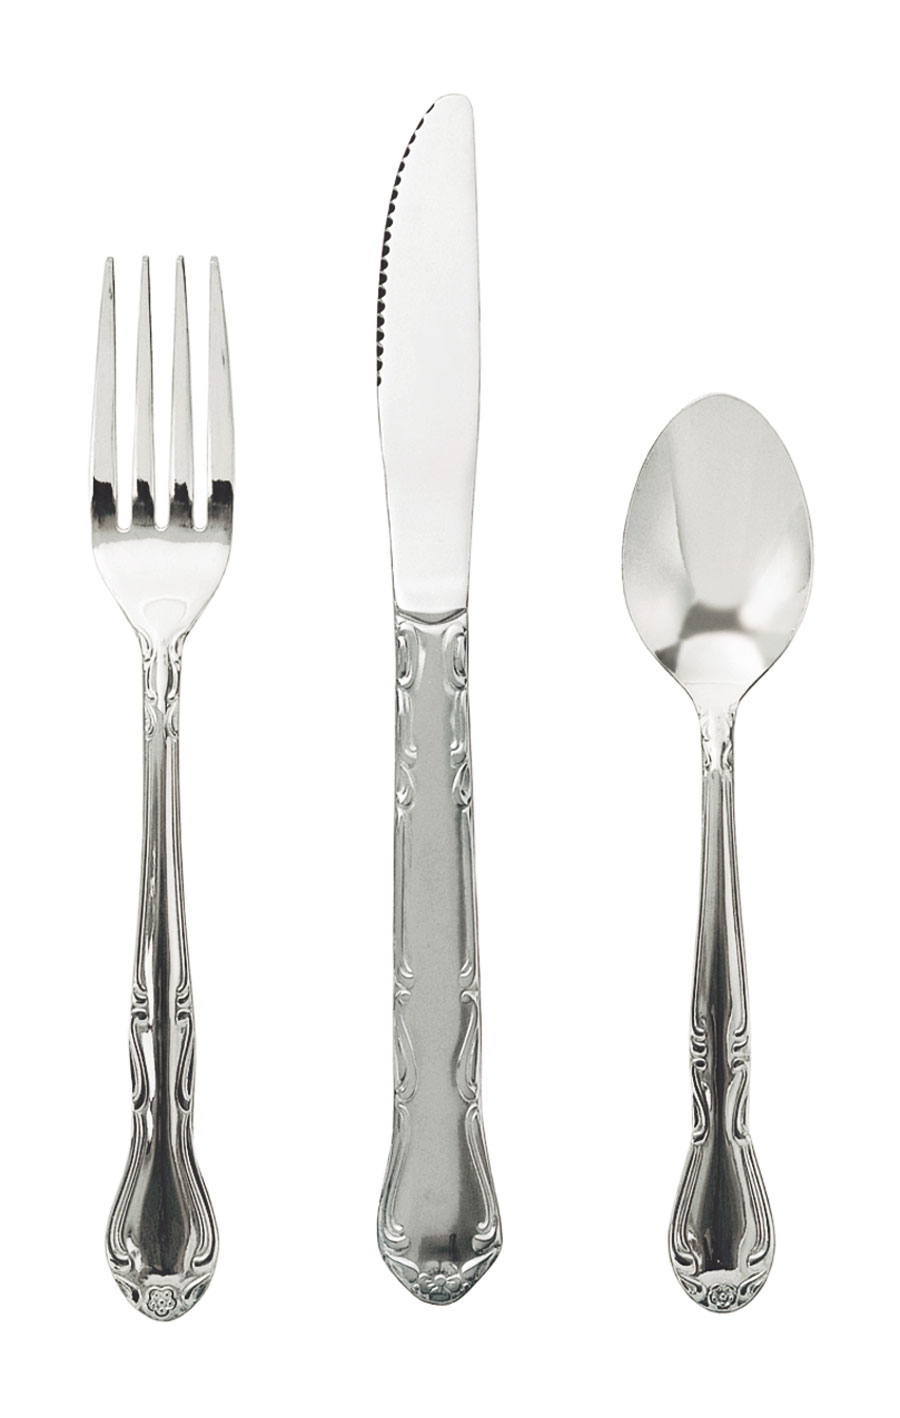 Update International CL-62 Mirror Polish Claridge Bouillon Spoon - 1 doz